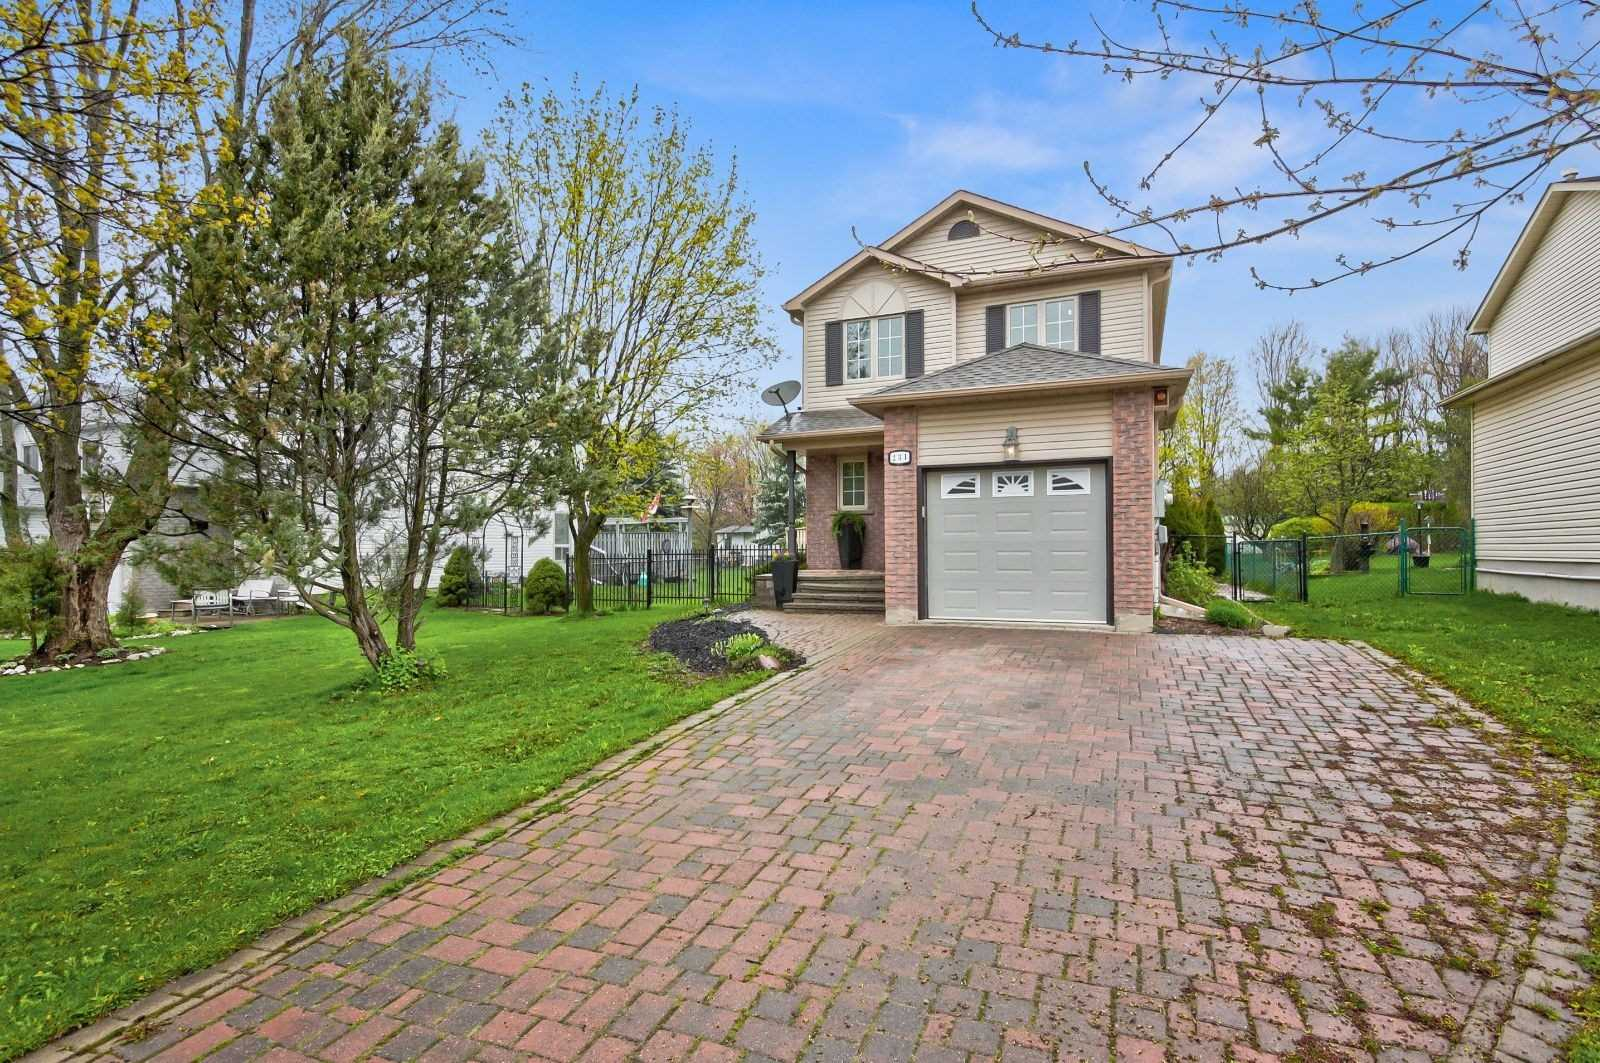 231 Mary Anne Dr